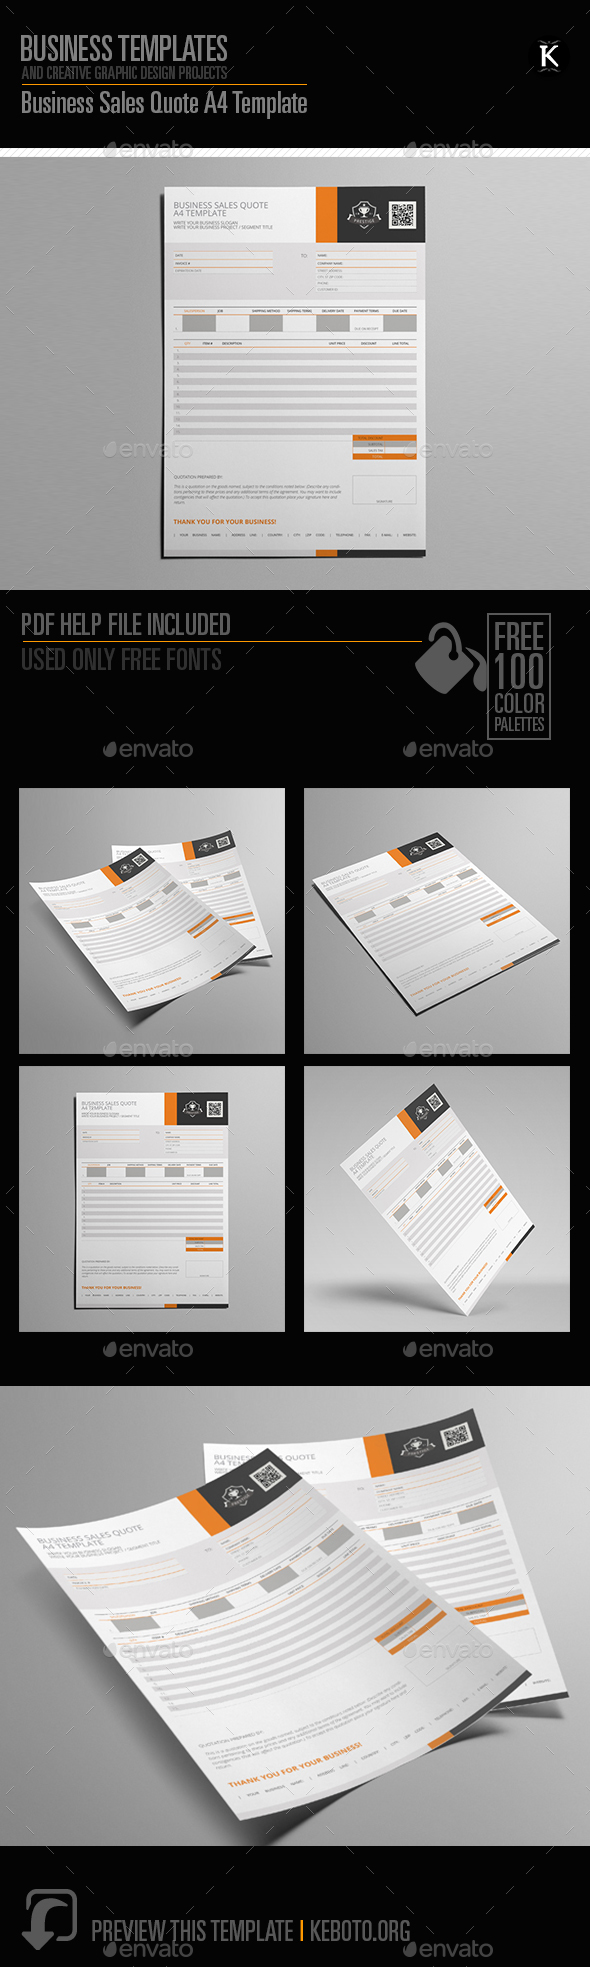 Business Sales Quote A4 Template - Miscellaneous Print Templates